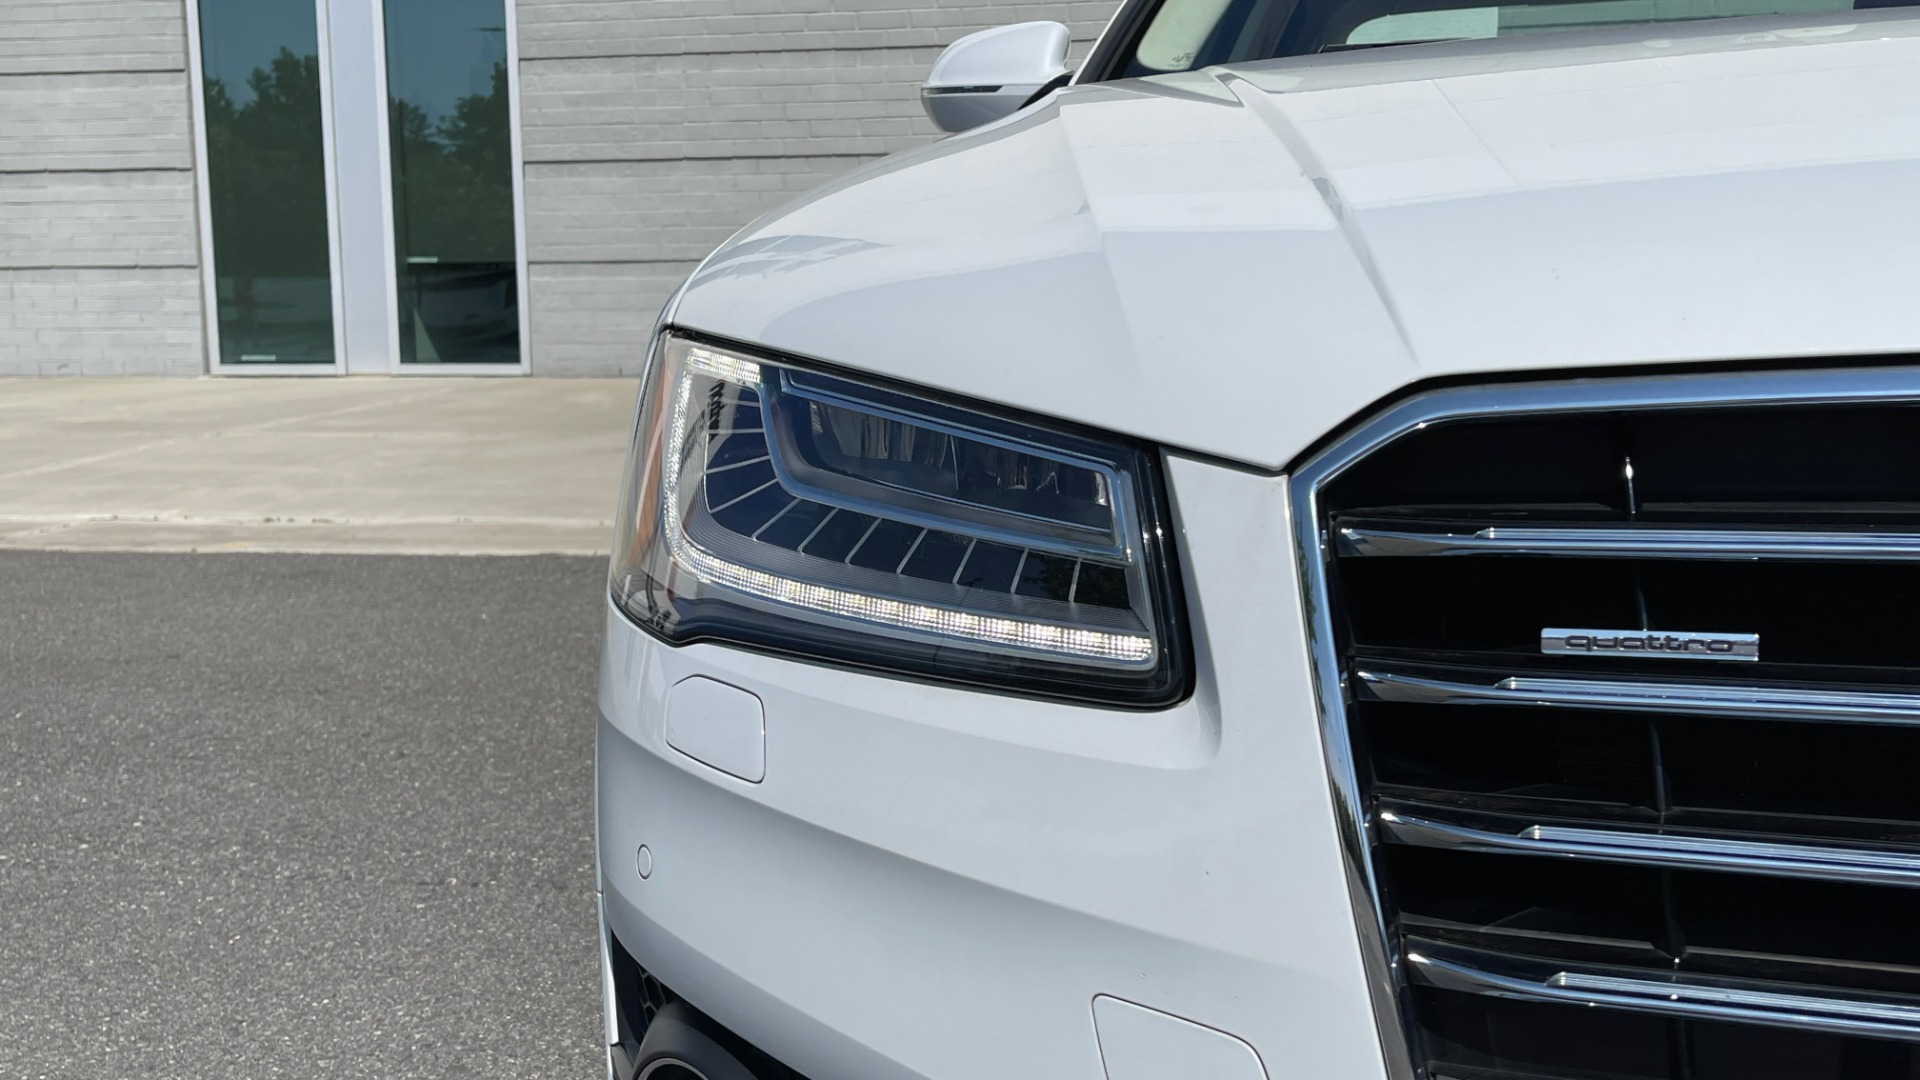 Used 2018 Audi A8 L SPORT 4.0T / EXECUTIVE PKG / NAV / BOSE / SUNROOF / REARVIEW for sale Sold at Formula Imports in Charlotte NC 28227 15